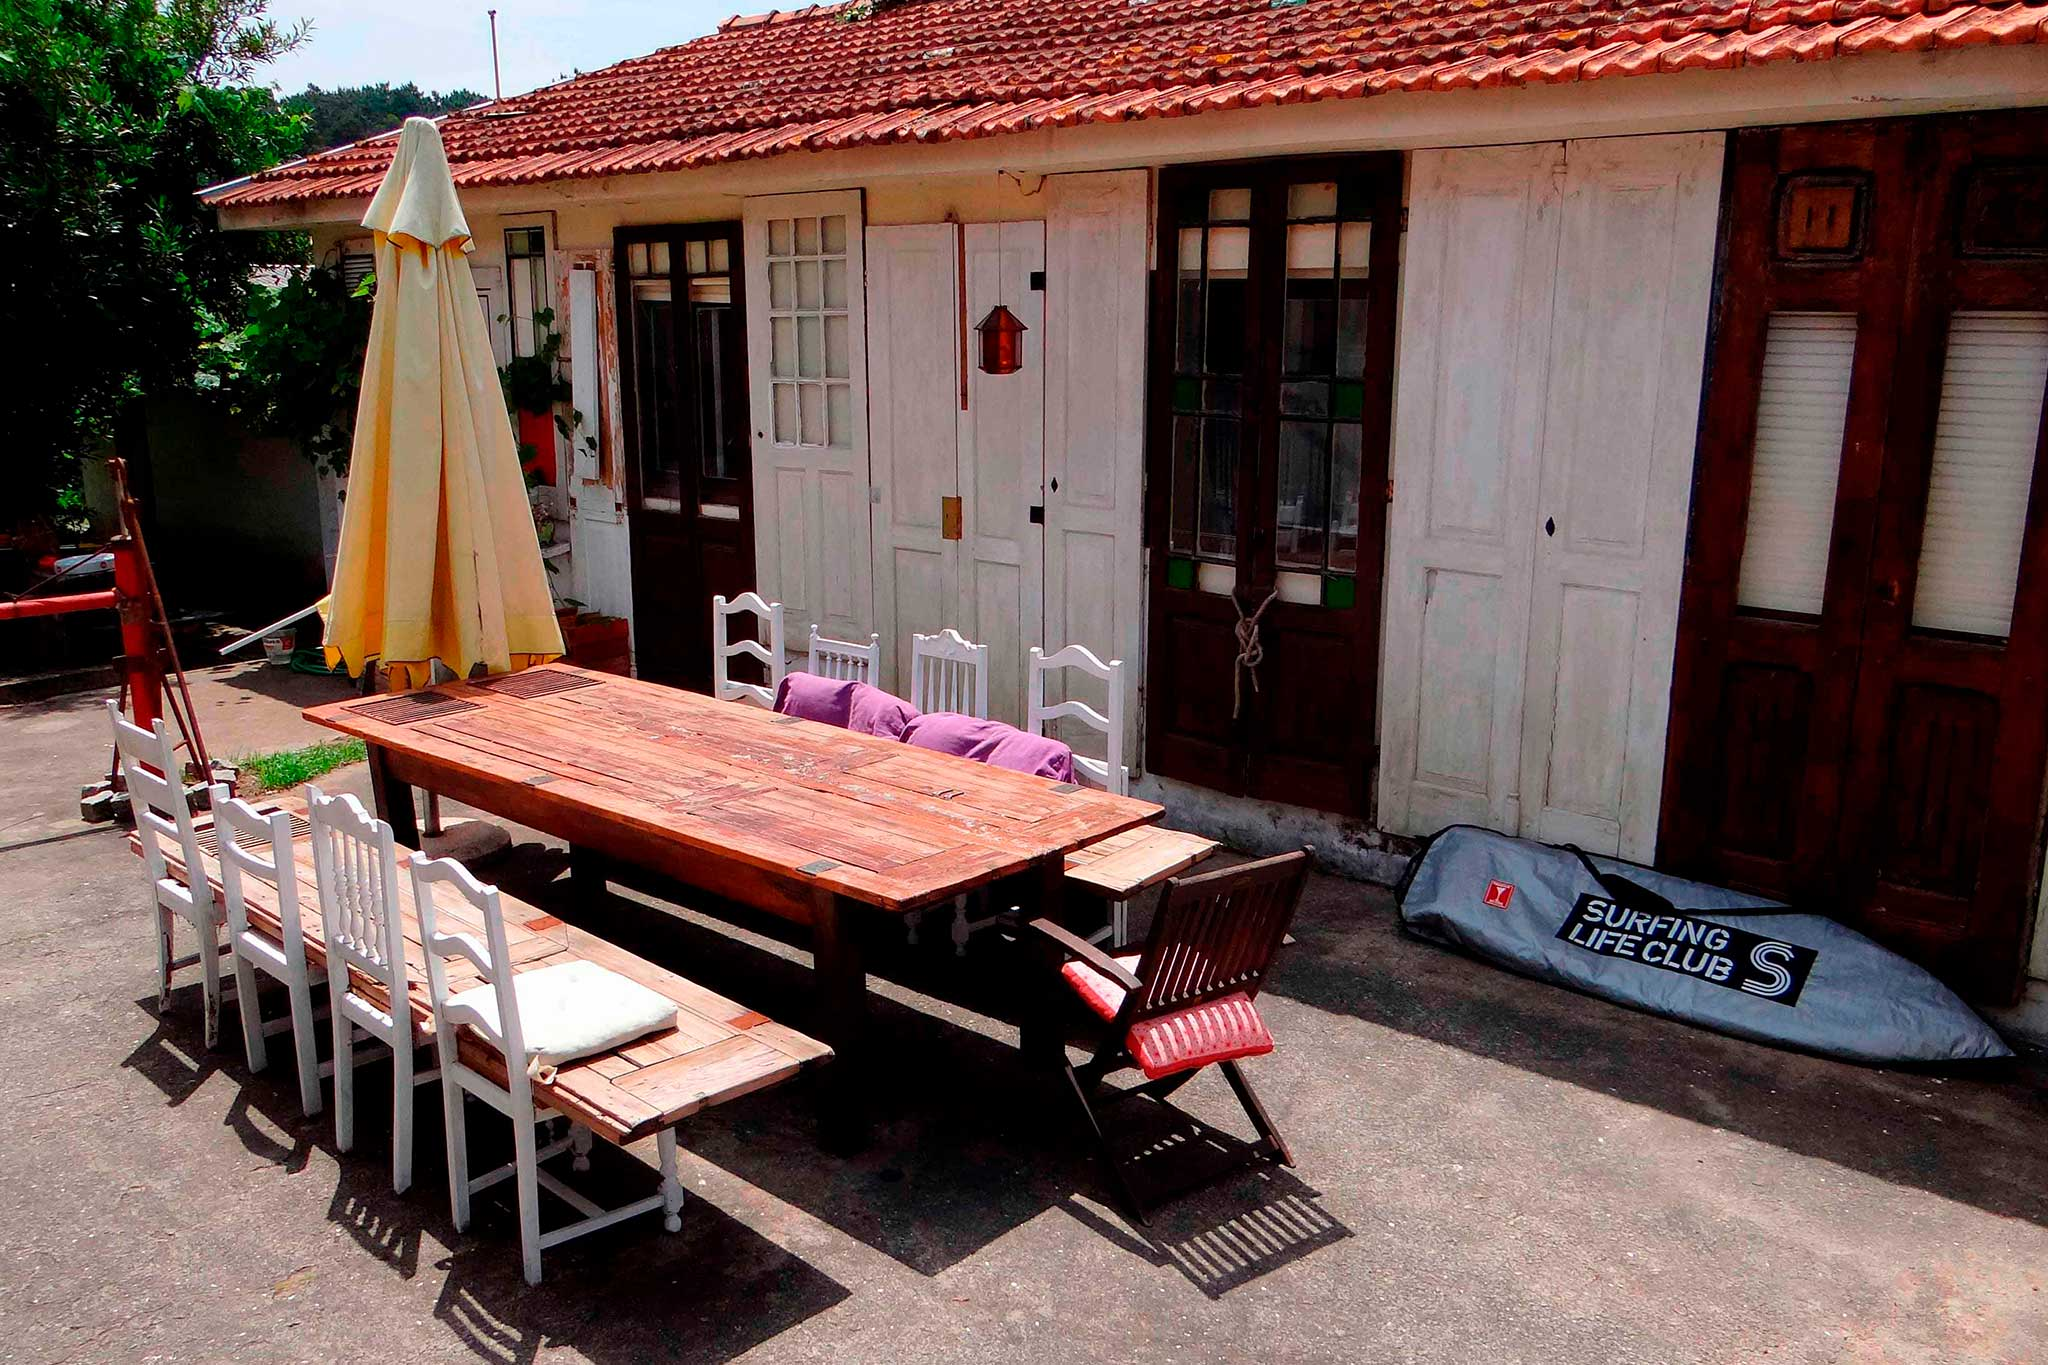 Maceda Surf Hostel